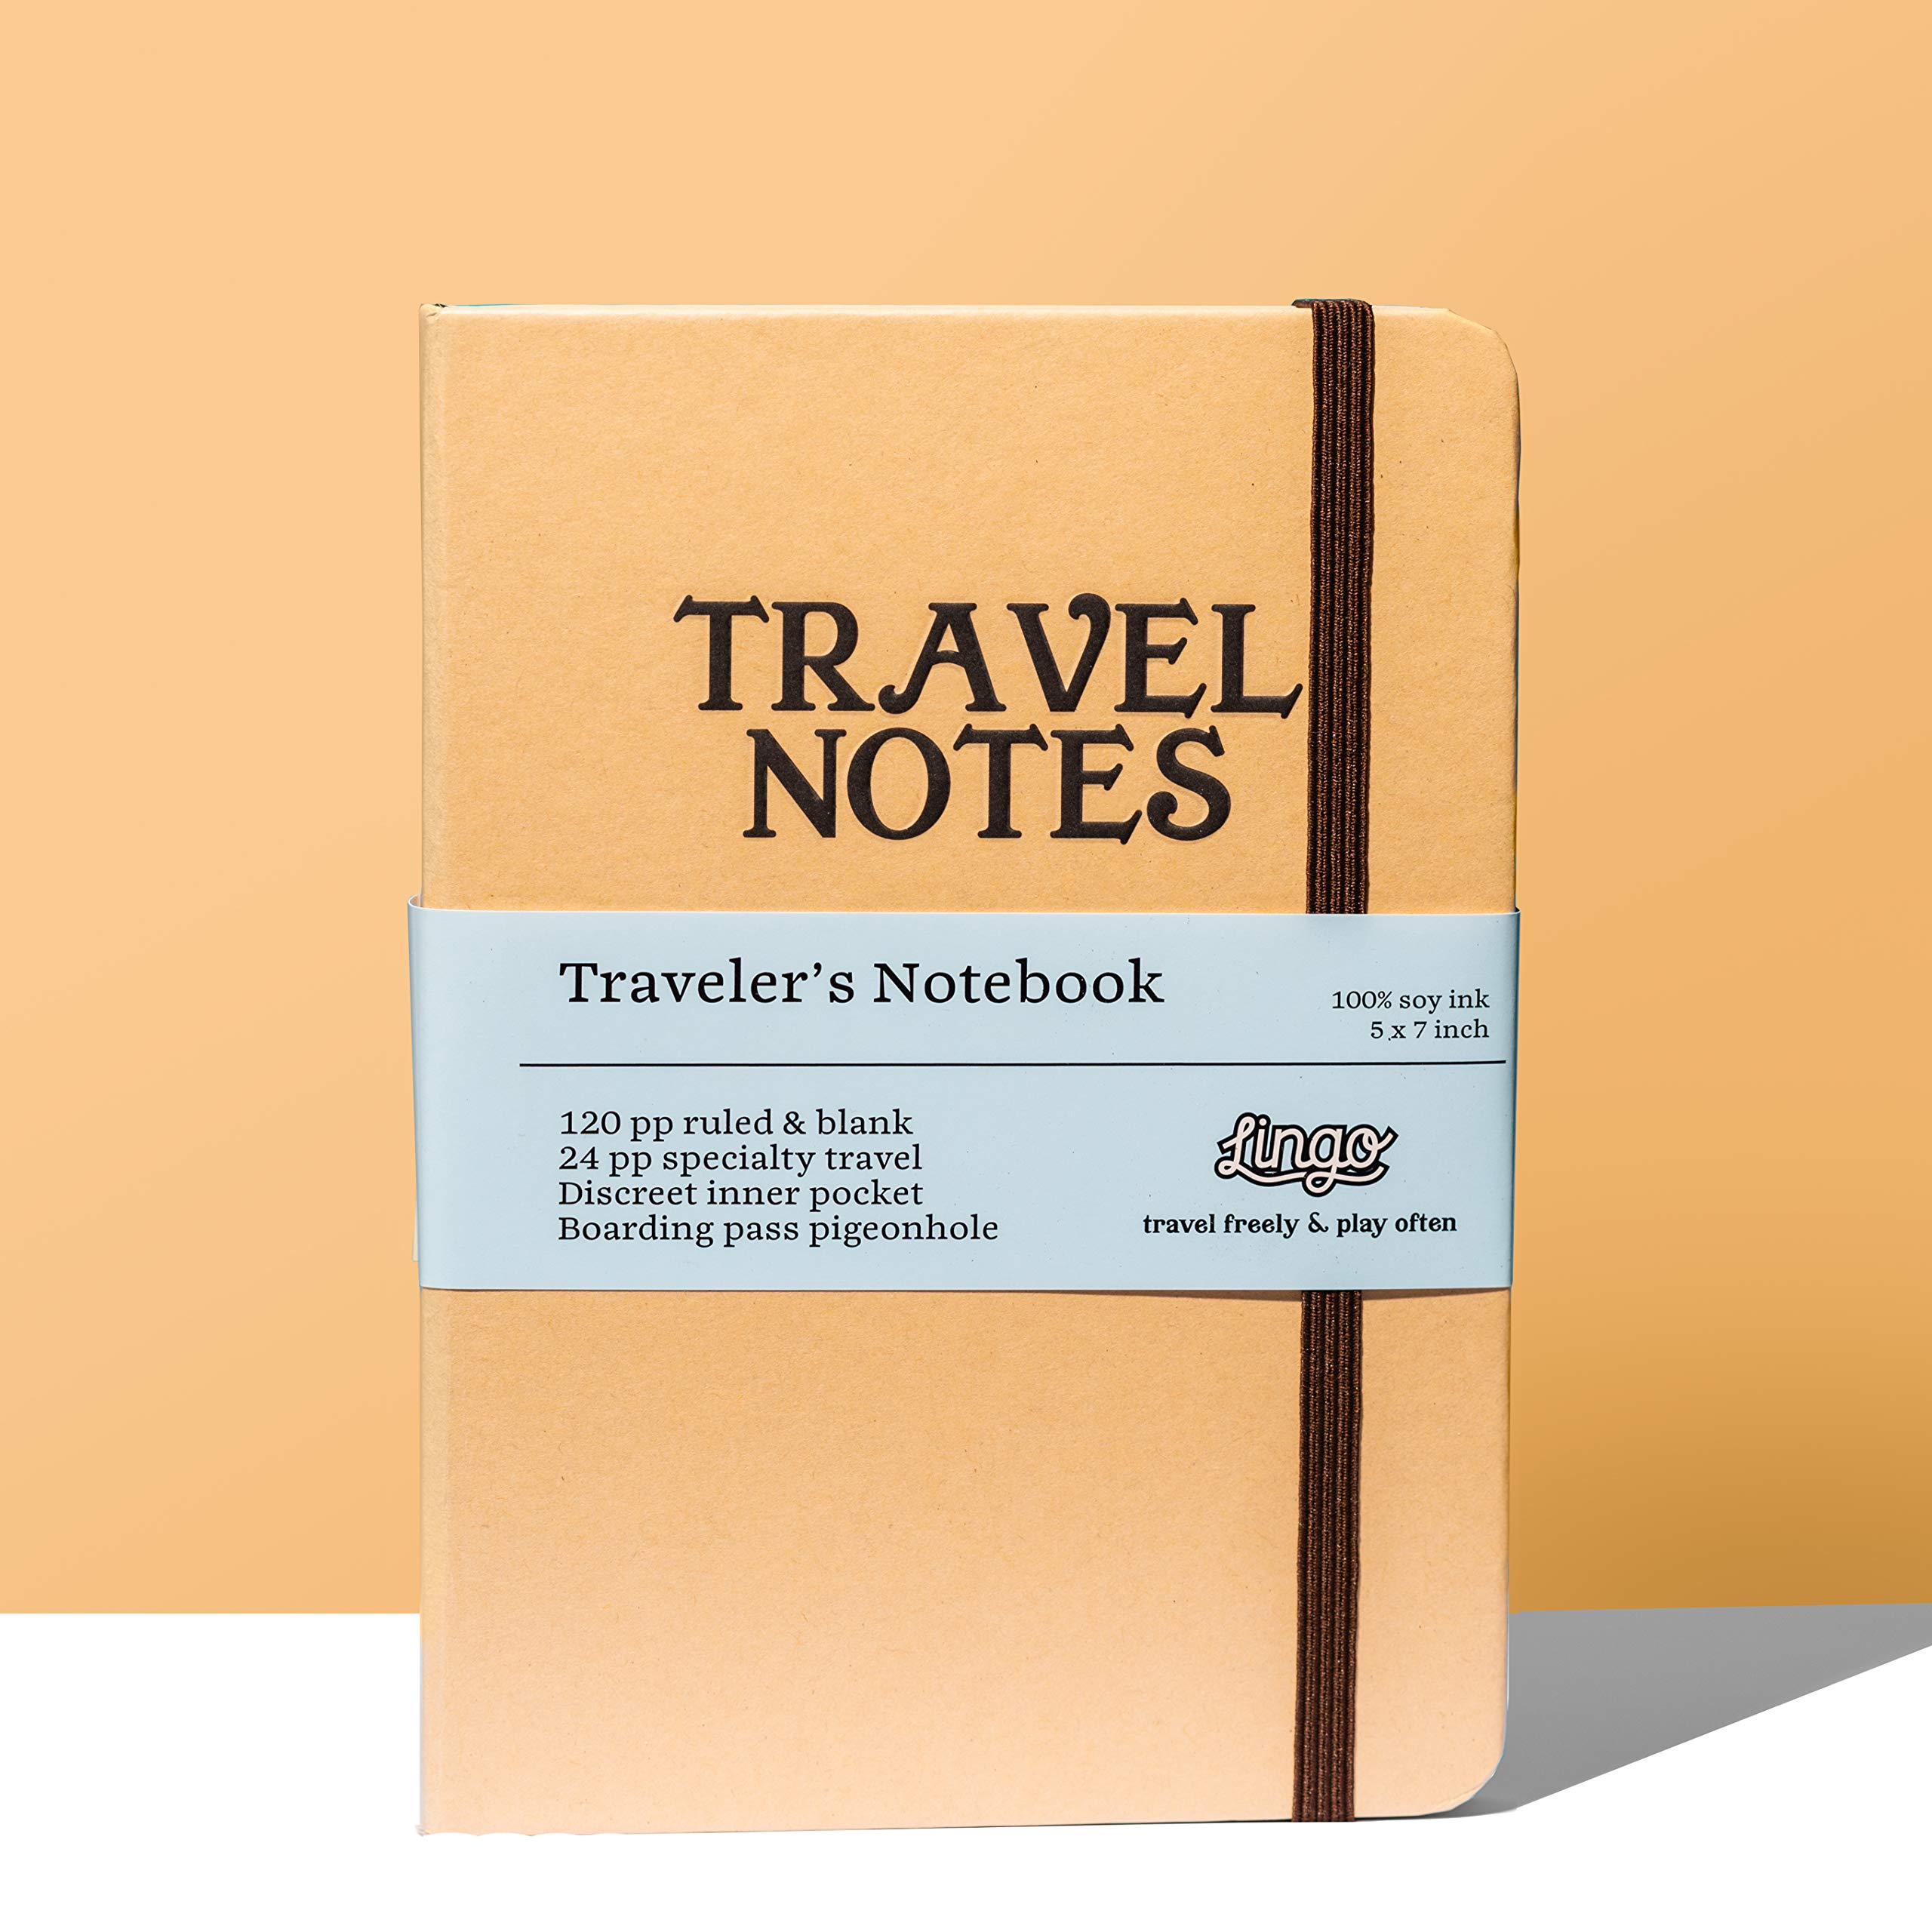 Lingo - Travel Notes - Travel Journal | Use as Diary, Notebook, Activity Planner | 144 Ruled and Blank Pages to Write, Draw, Sketch | 100% Soy Ink | Recycled Paper | Security Strap | Secret Pockets